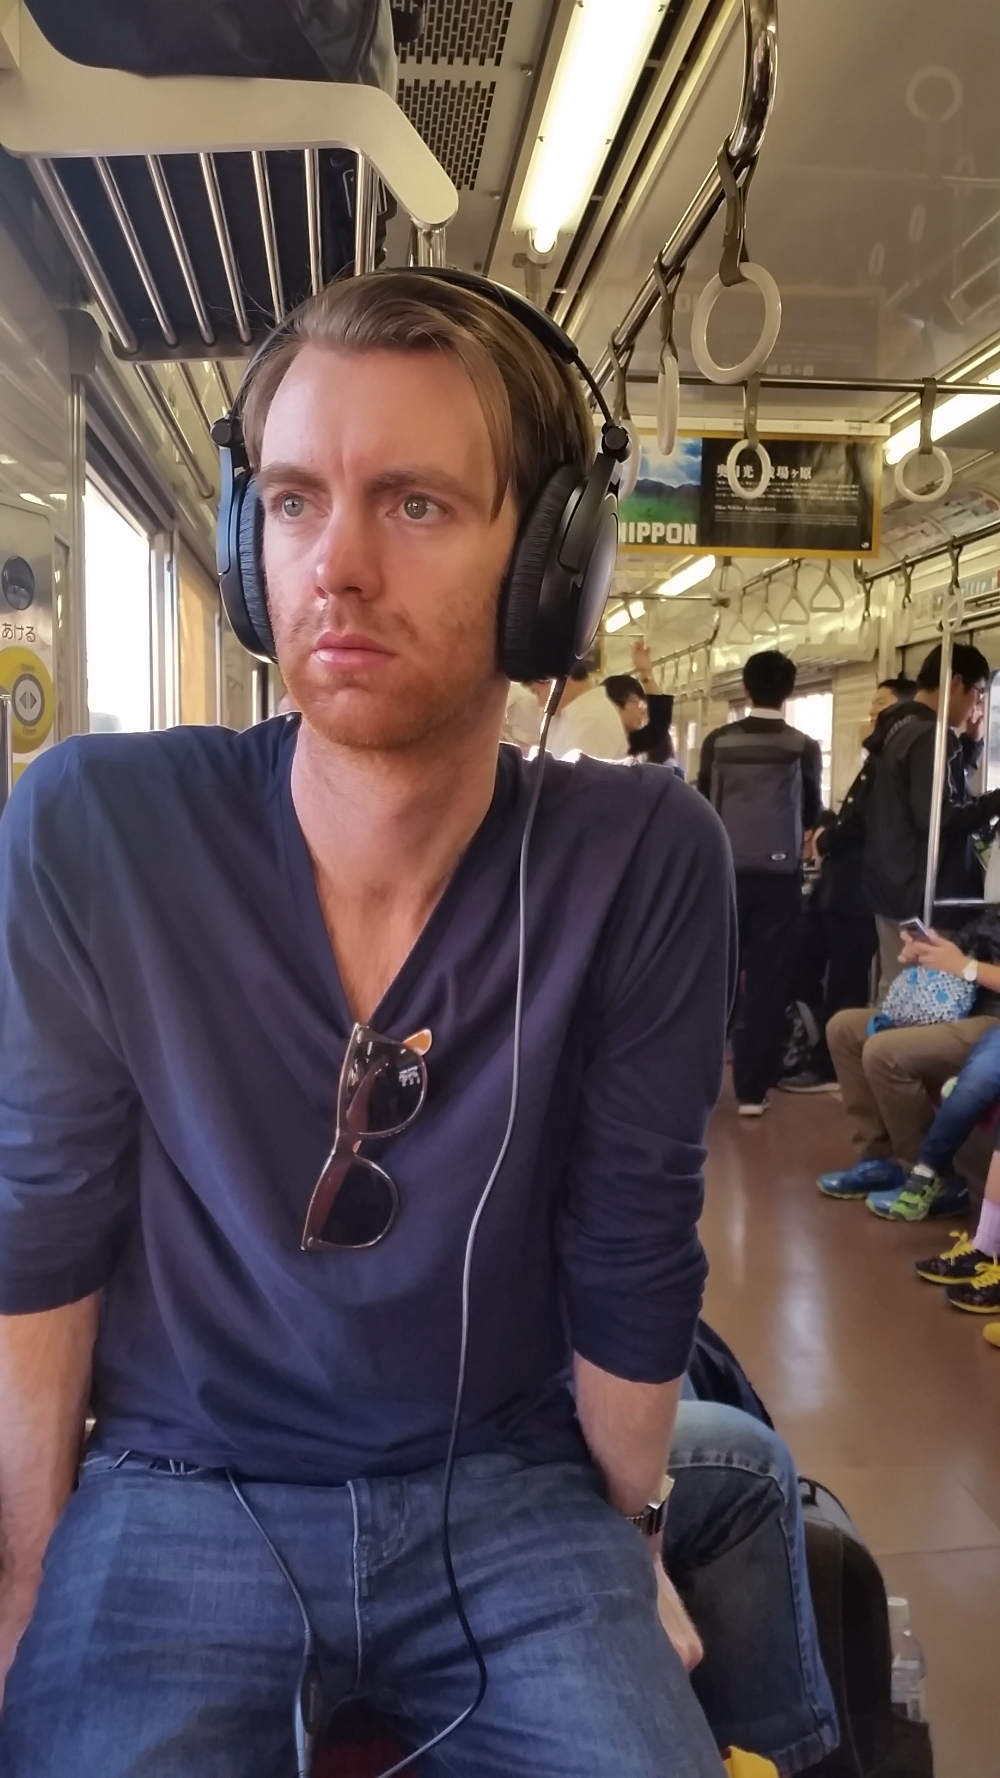 Ride on trains, sit on suitcases, look handsome. That's how we do in Japan.